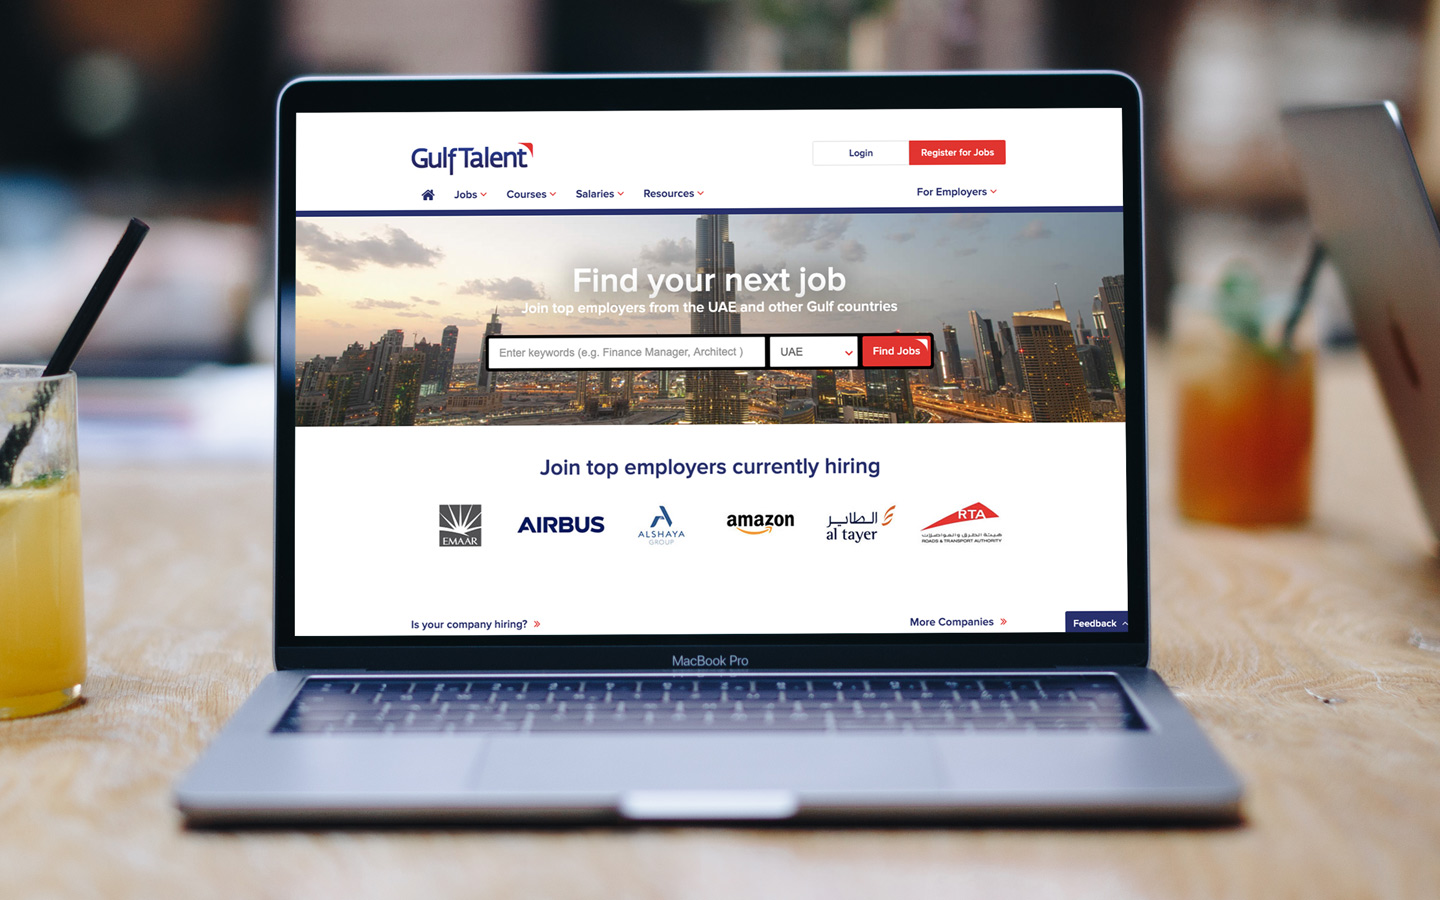 Gulf Talent Website is the best in the UAE